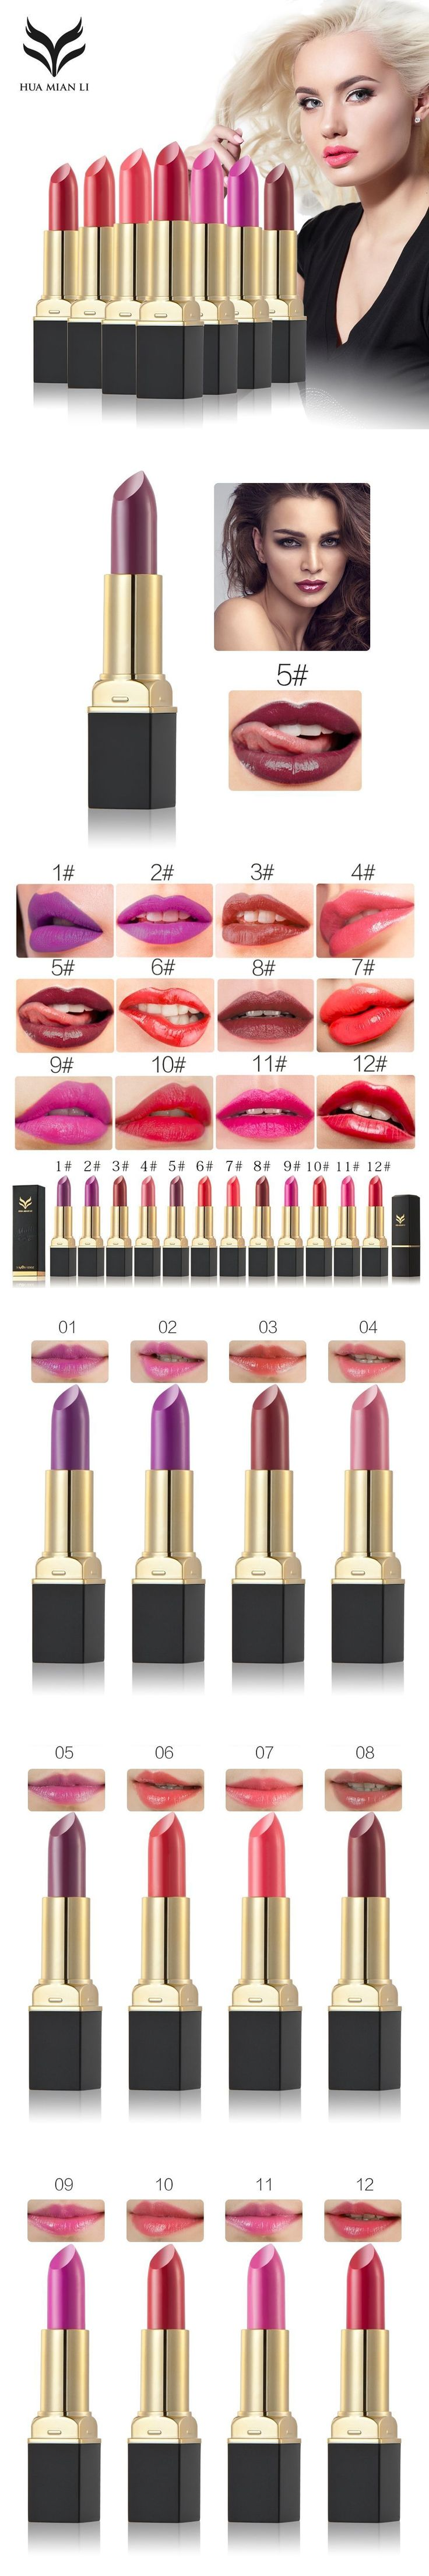 12 Colors Matte Liquid Red Lipstick Flower Color Vampire Moisturizing Baby Lips Beauty Long Lasting Brand Makeup Cosmetics